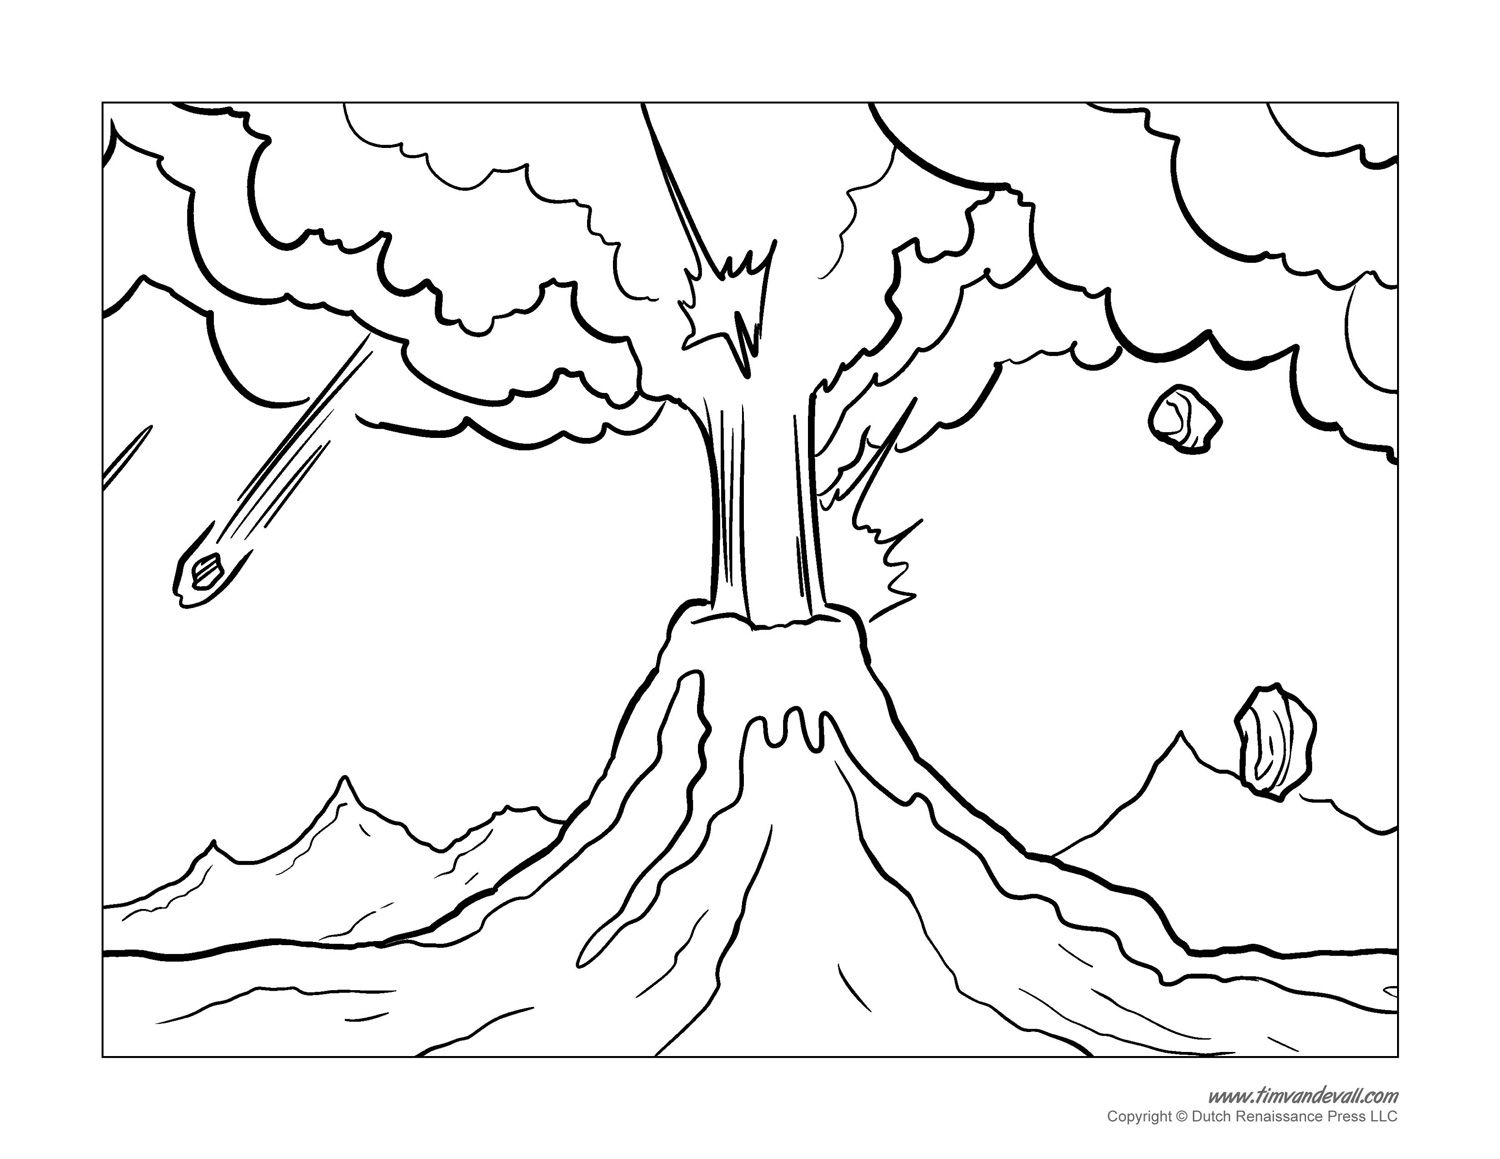 Volcano Coloring Sheets Google Search Coloring Pages Coloring For Kids Color